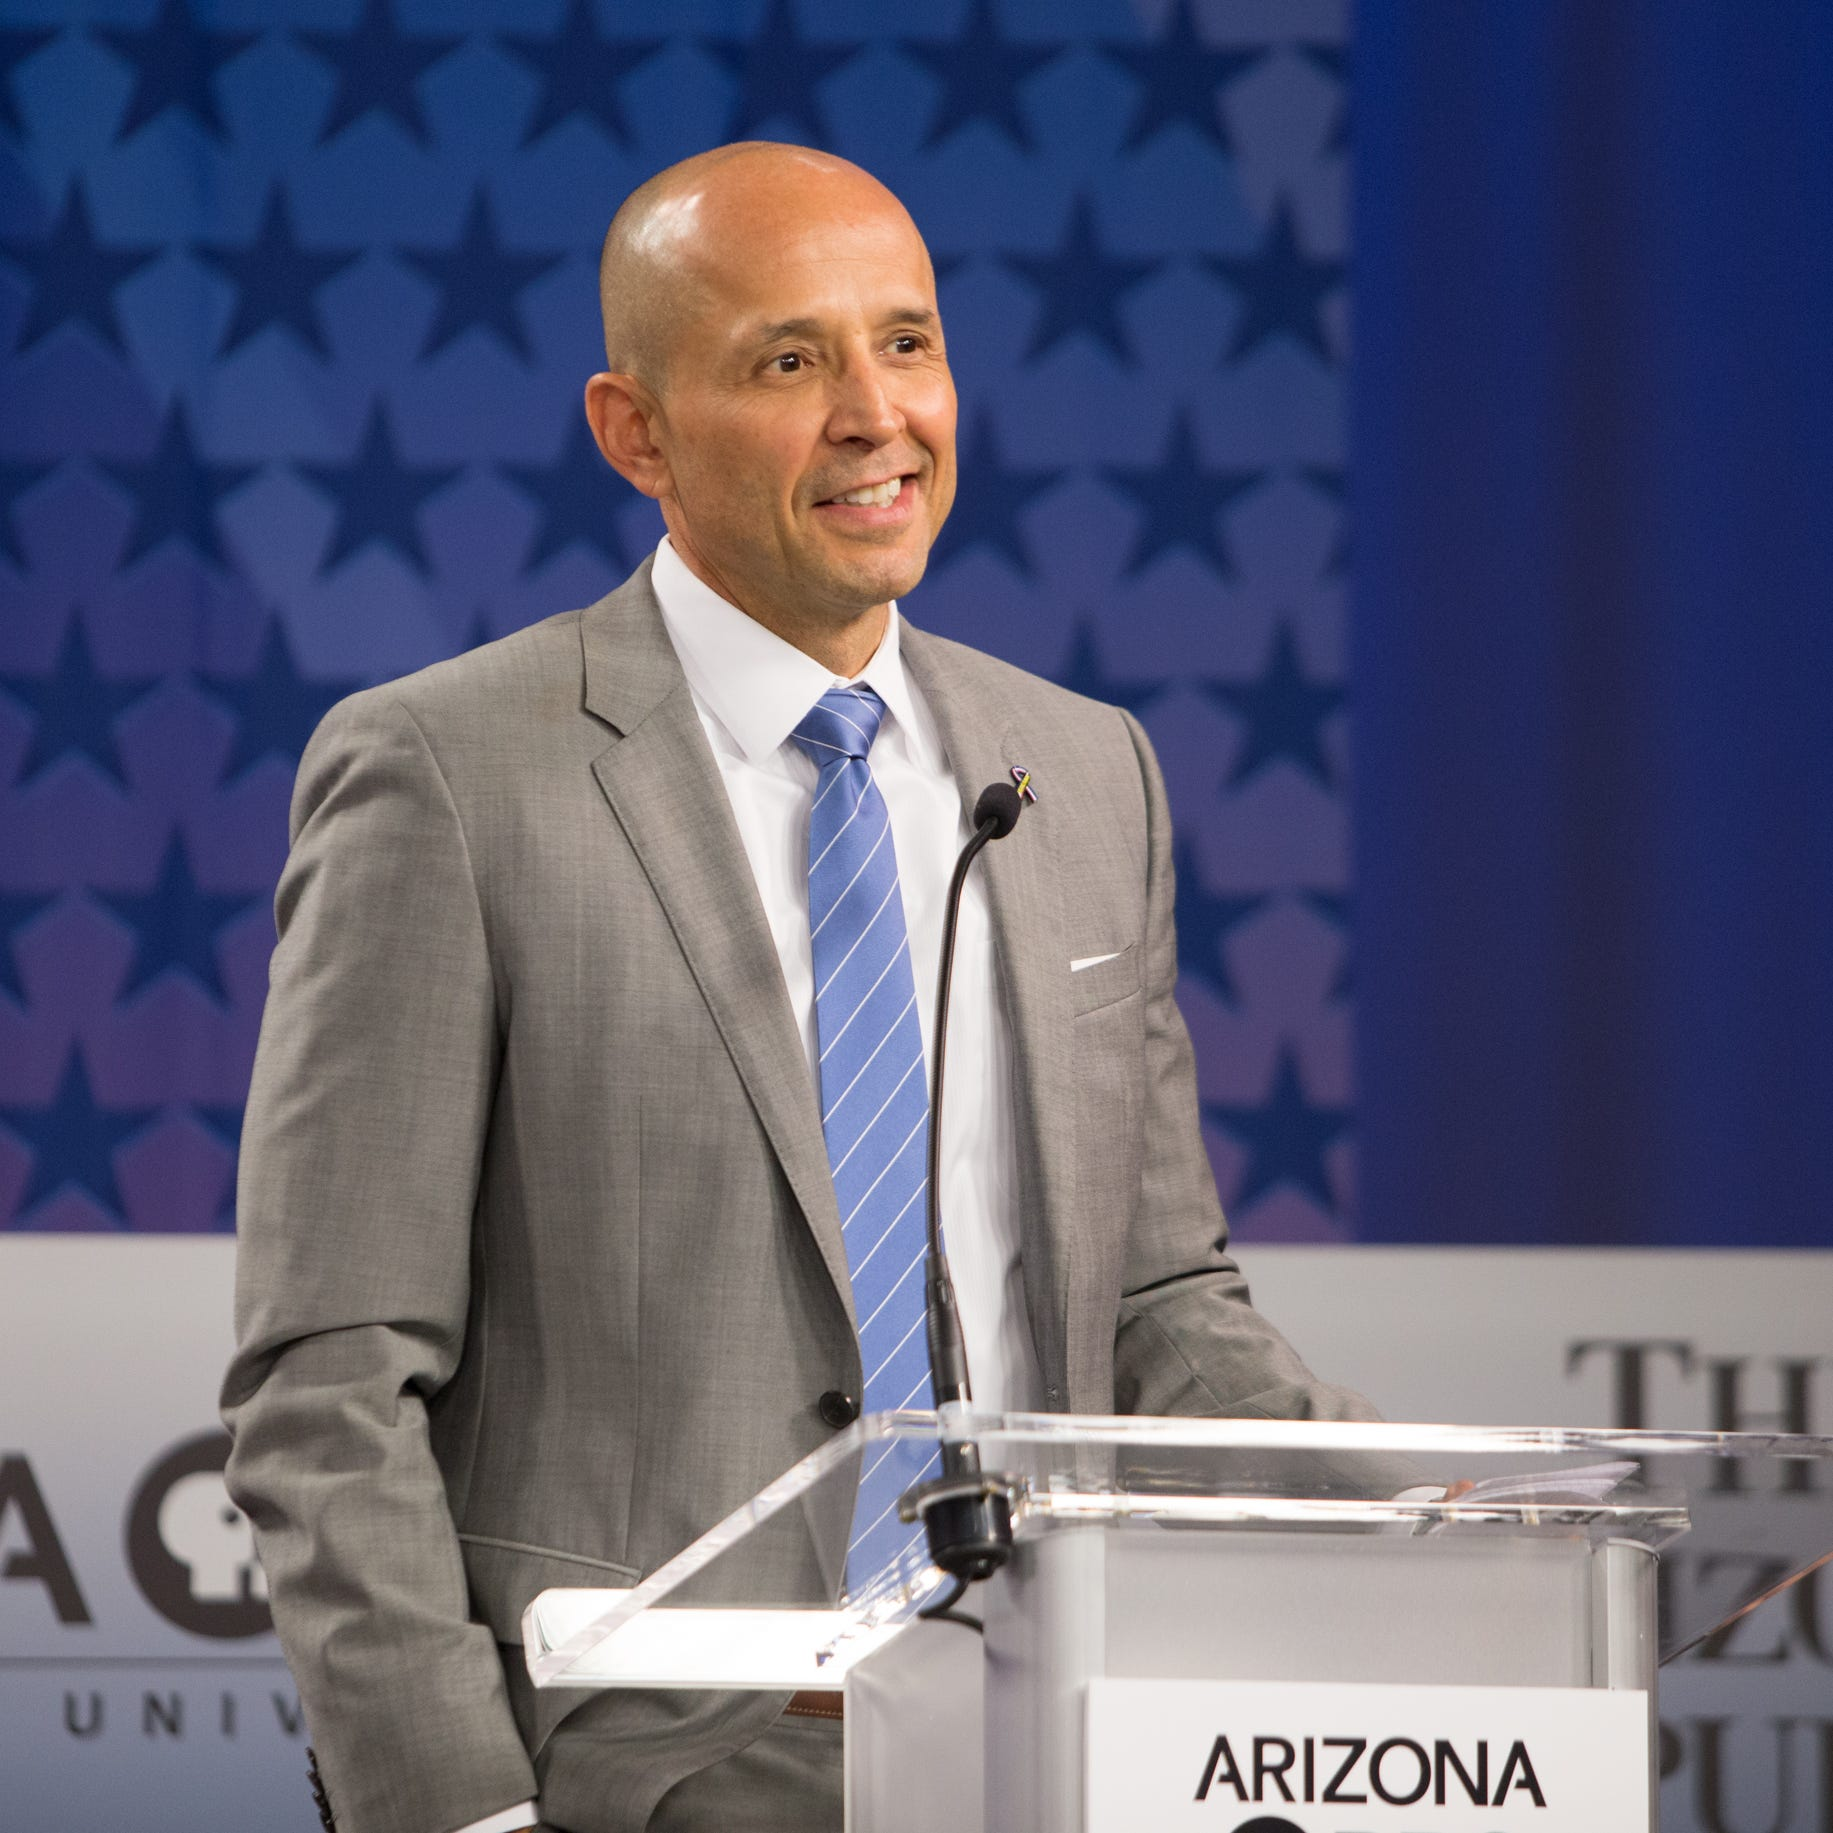 David Garcia's PR disasters continue with staffer's 'sh-thole country' comment